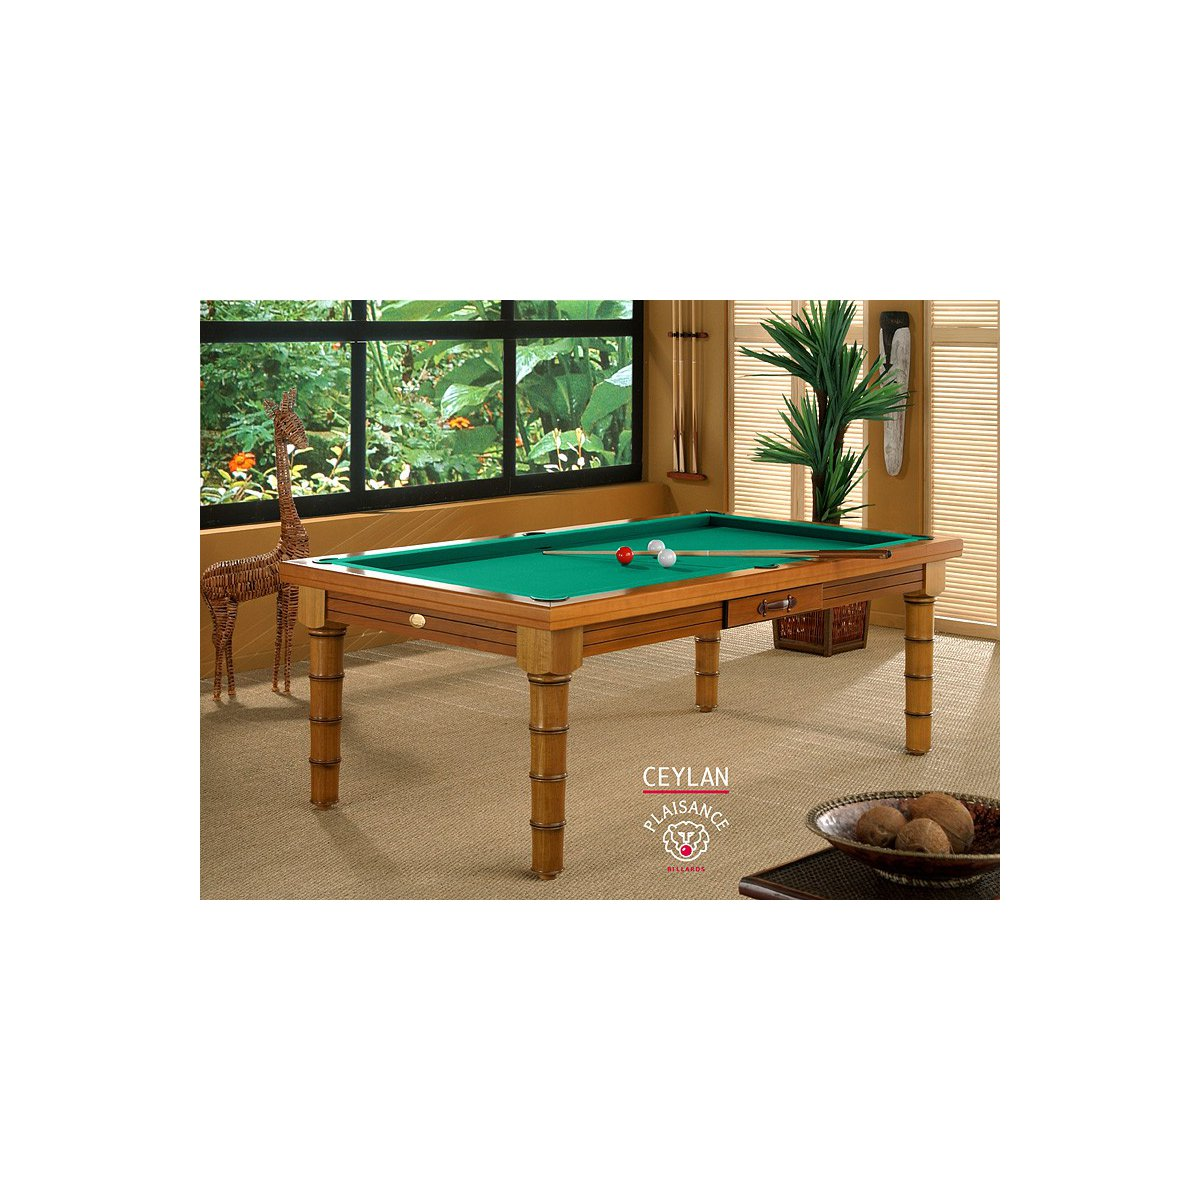 Billard ceylan en table de billard transformable - Billard transformable ...